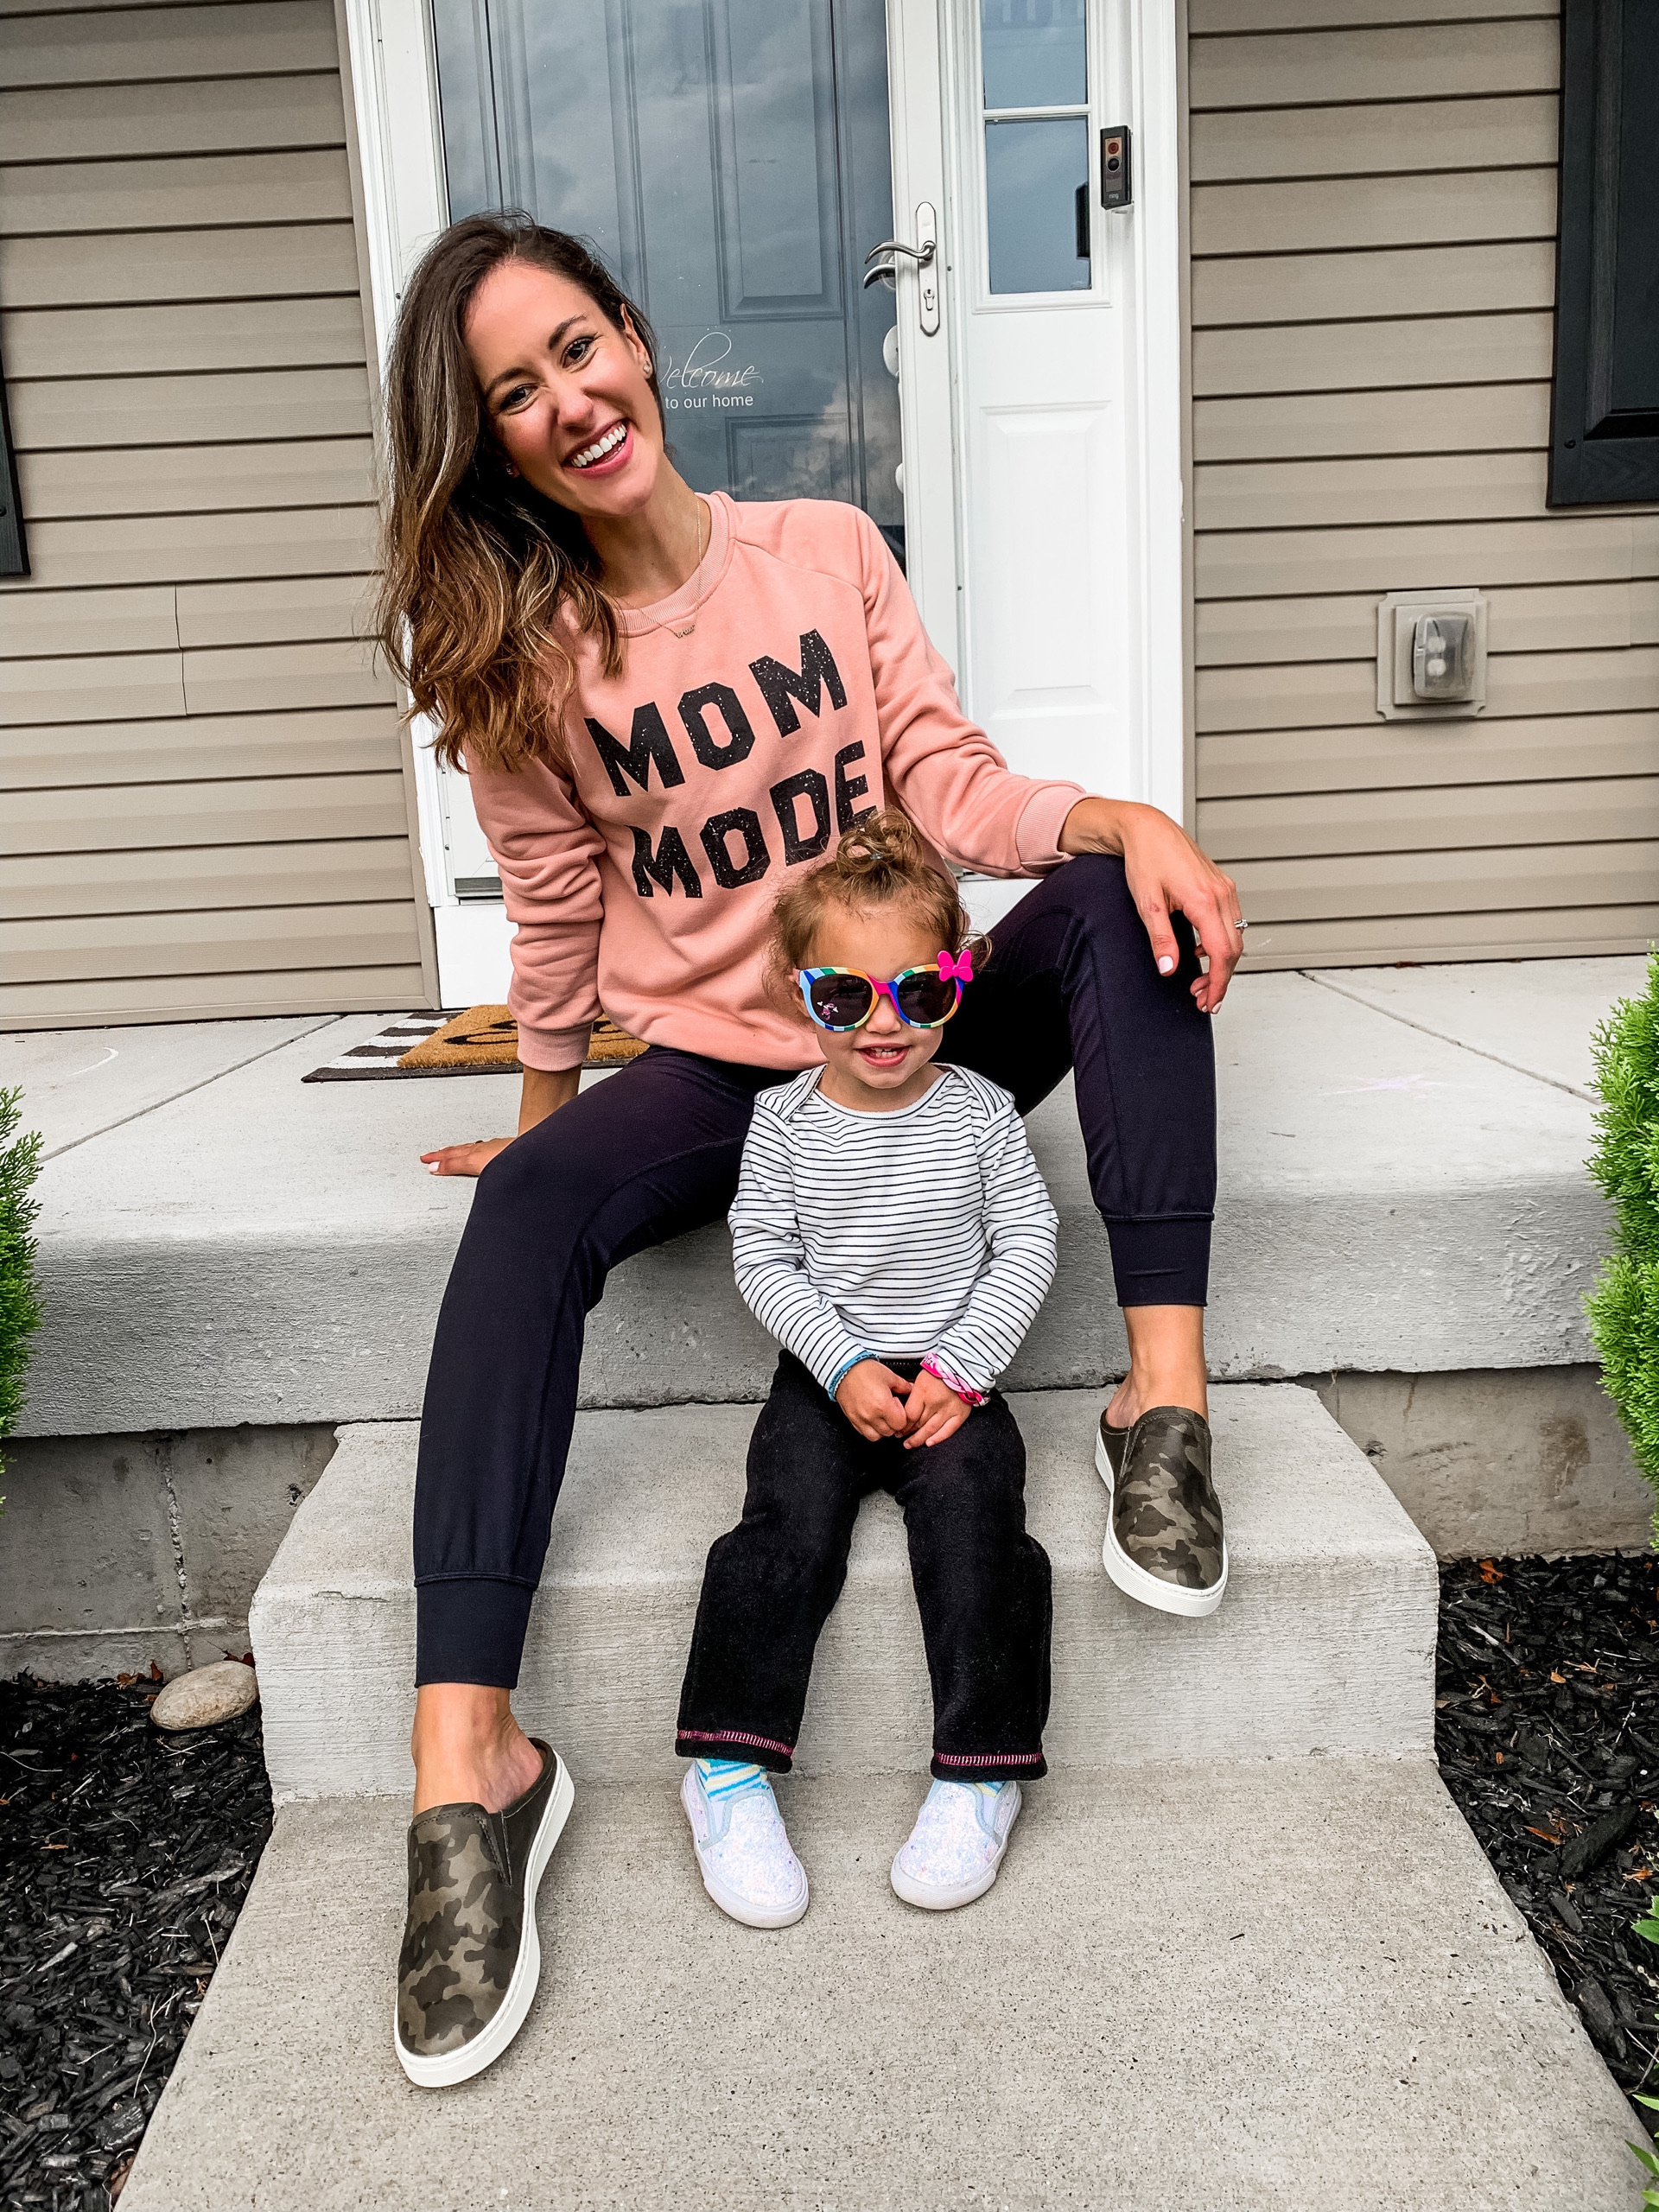 5 MAMA SWEATSHIRTS - My Favorite Mom Life Sweatshirts on Coming Up Roses